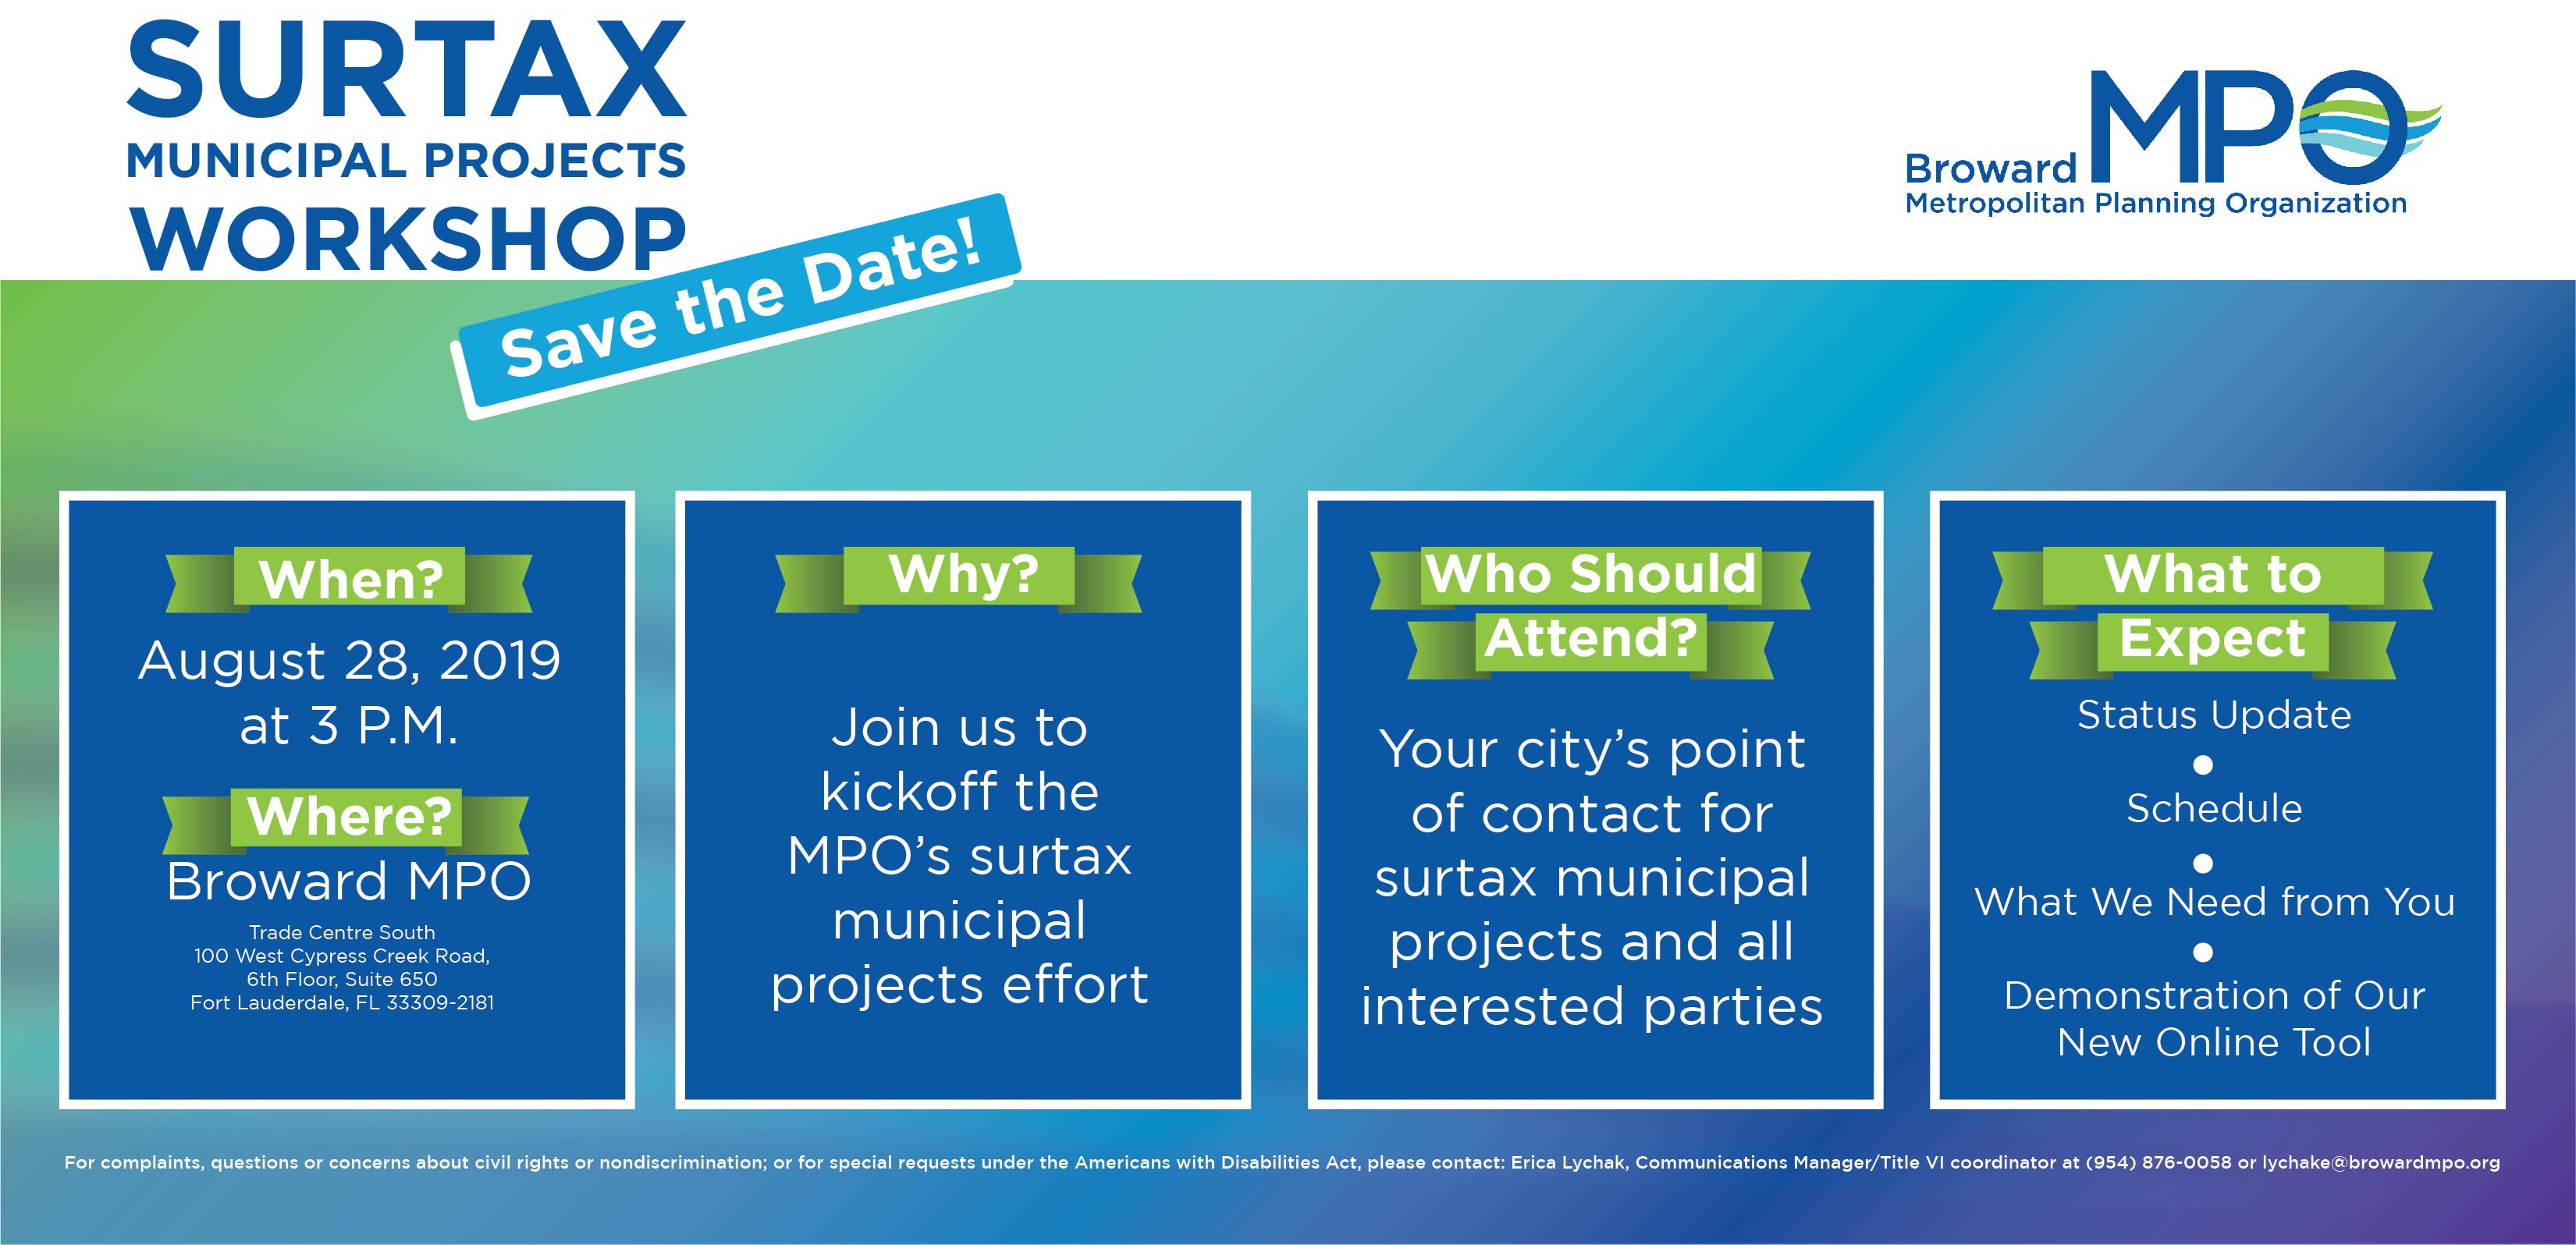 Surtax Municipal Projects Workshop Flyer